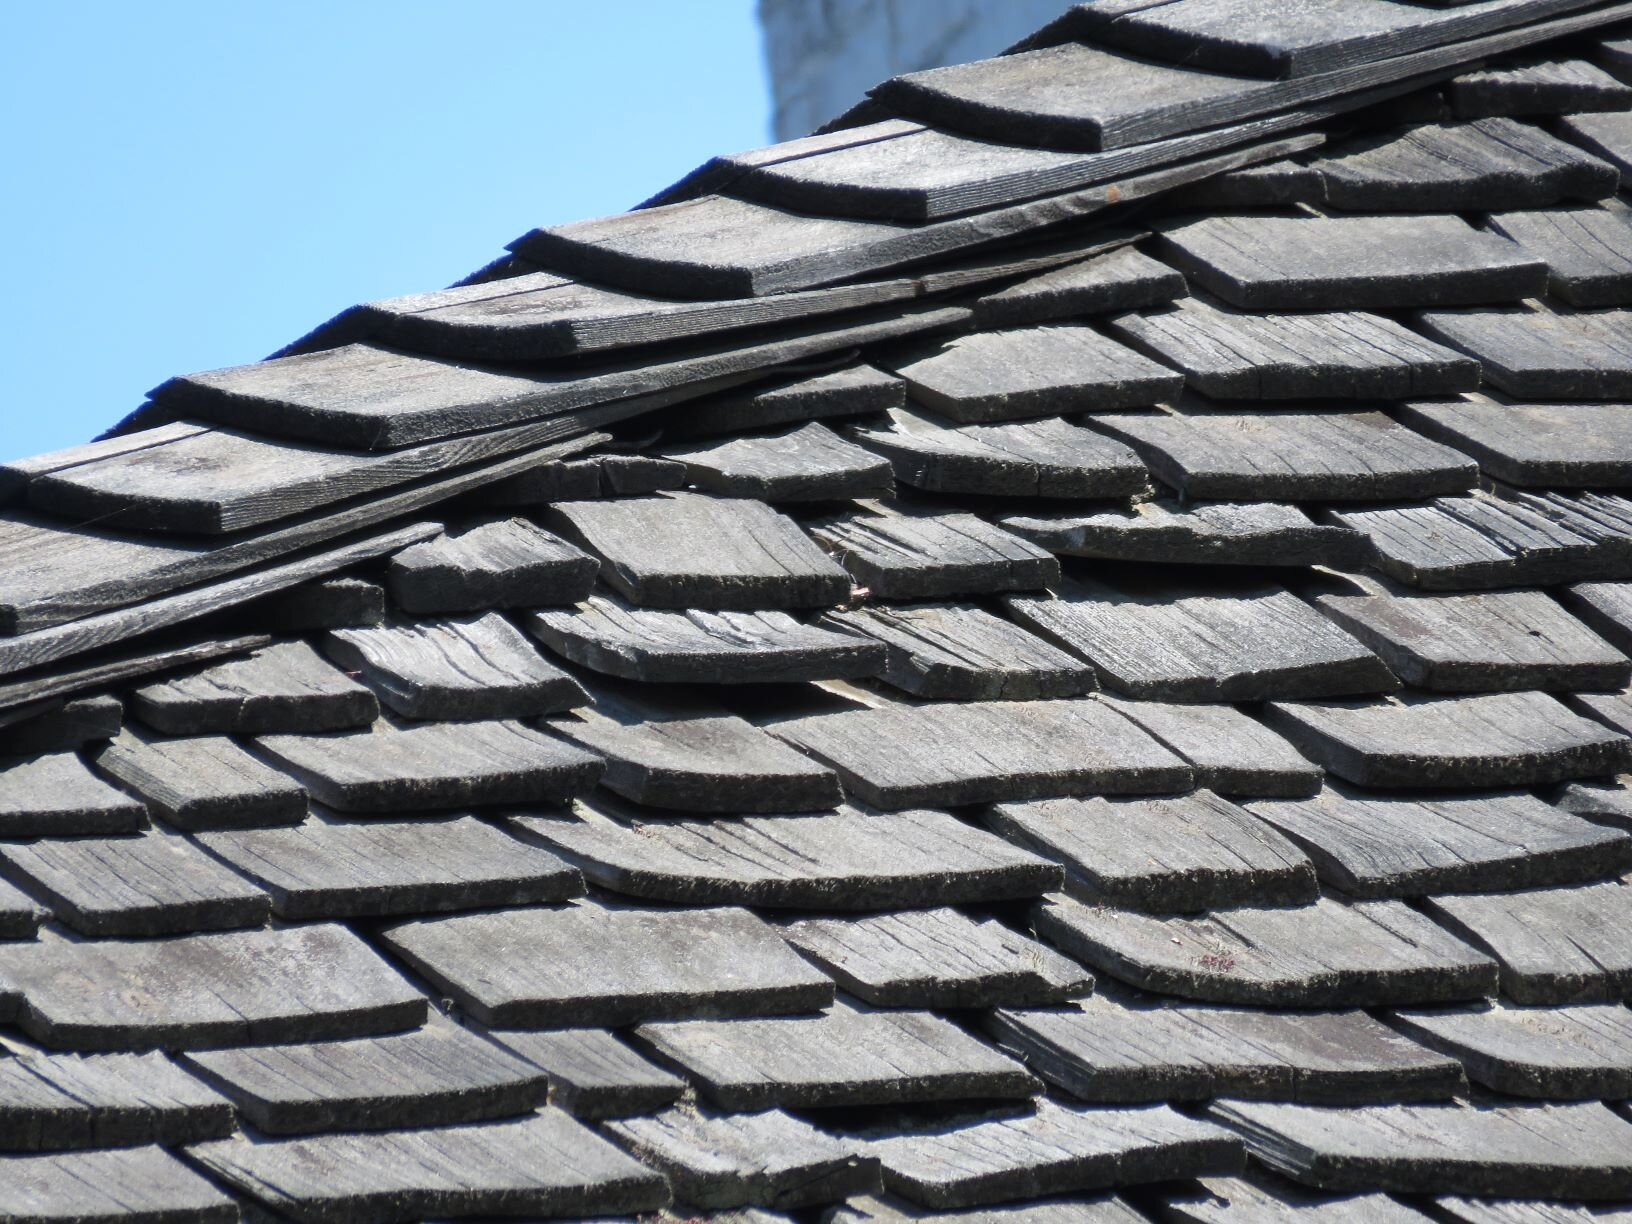 Close-up of a 40-year-old wood shake roof.